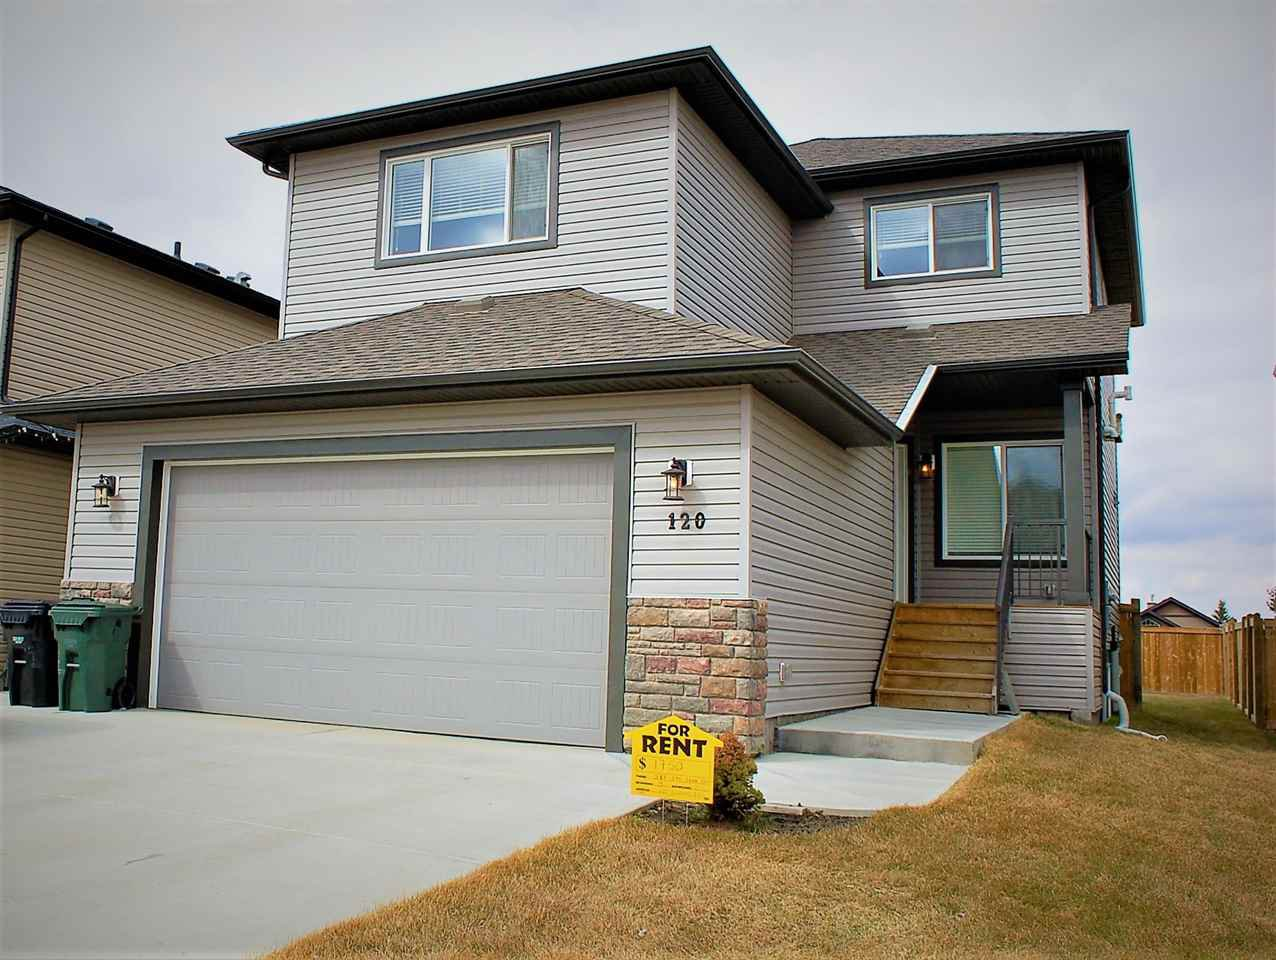 Main Photo: 120 HILLDOWNS Drive: Spruce Grove House for sale : MLS®# E4150049